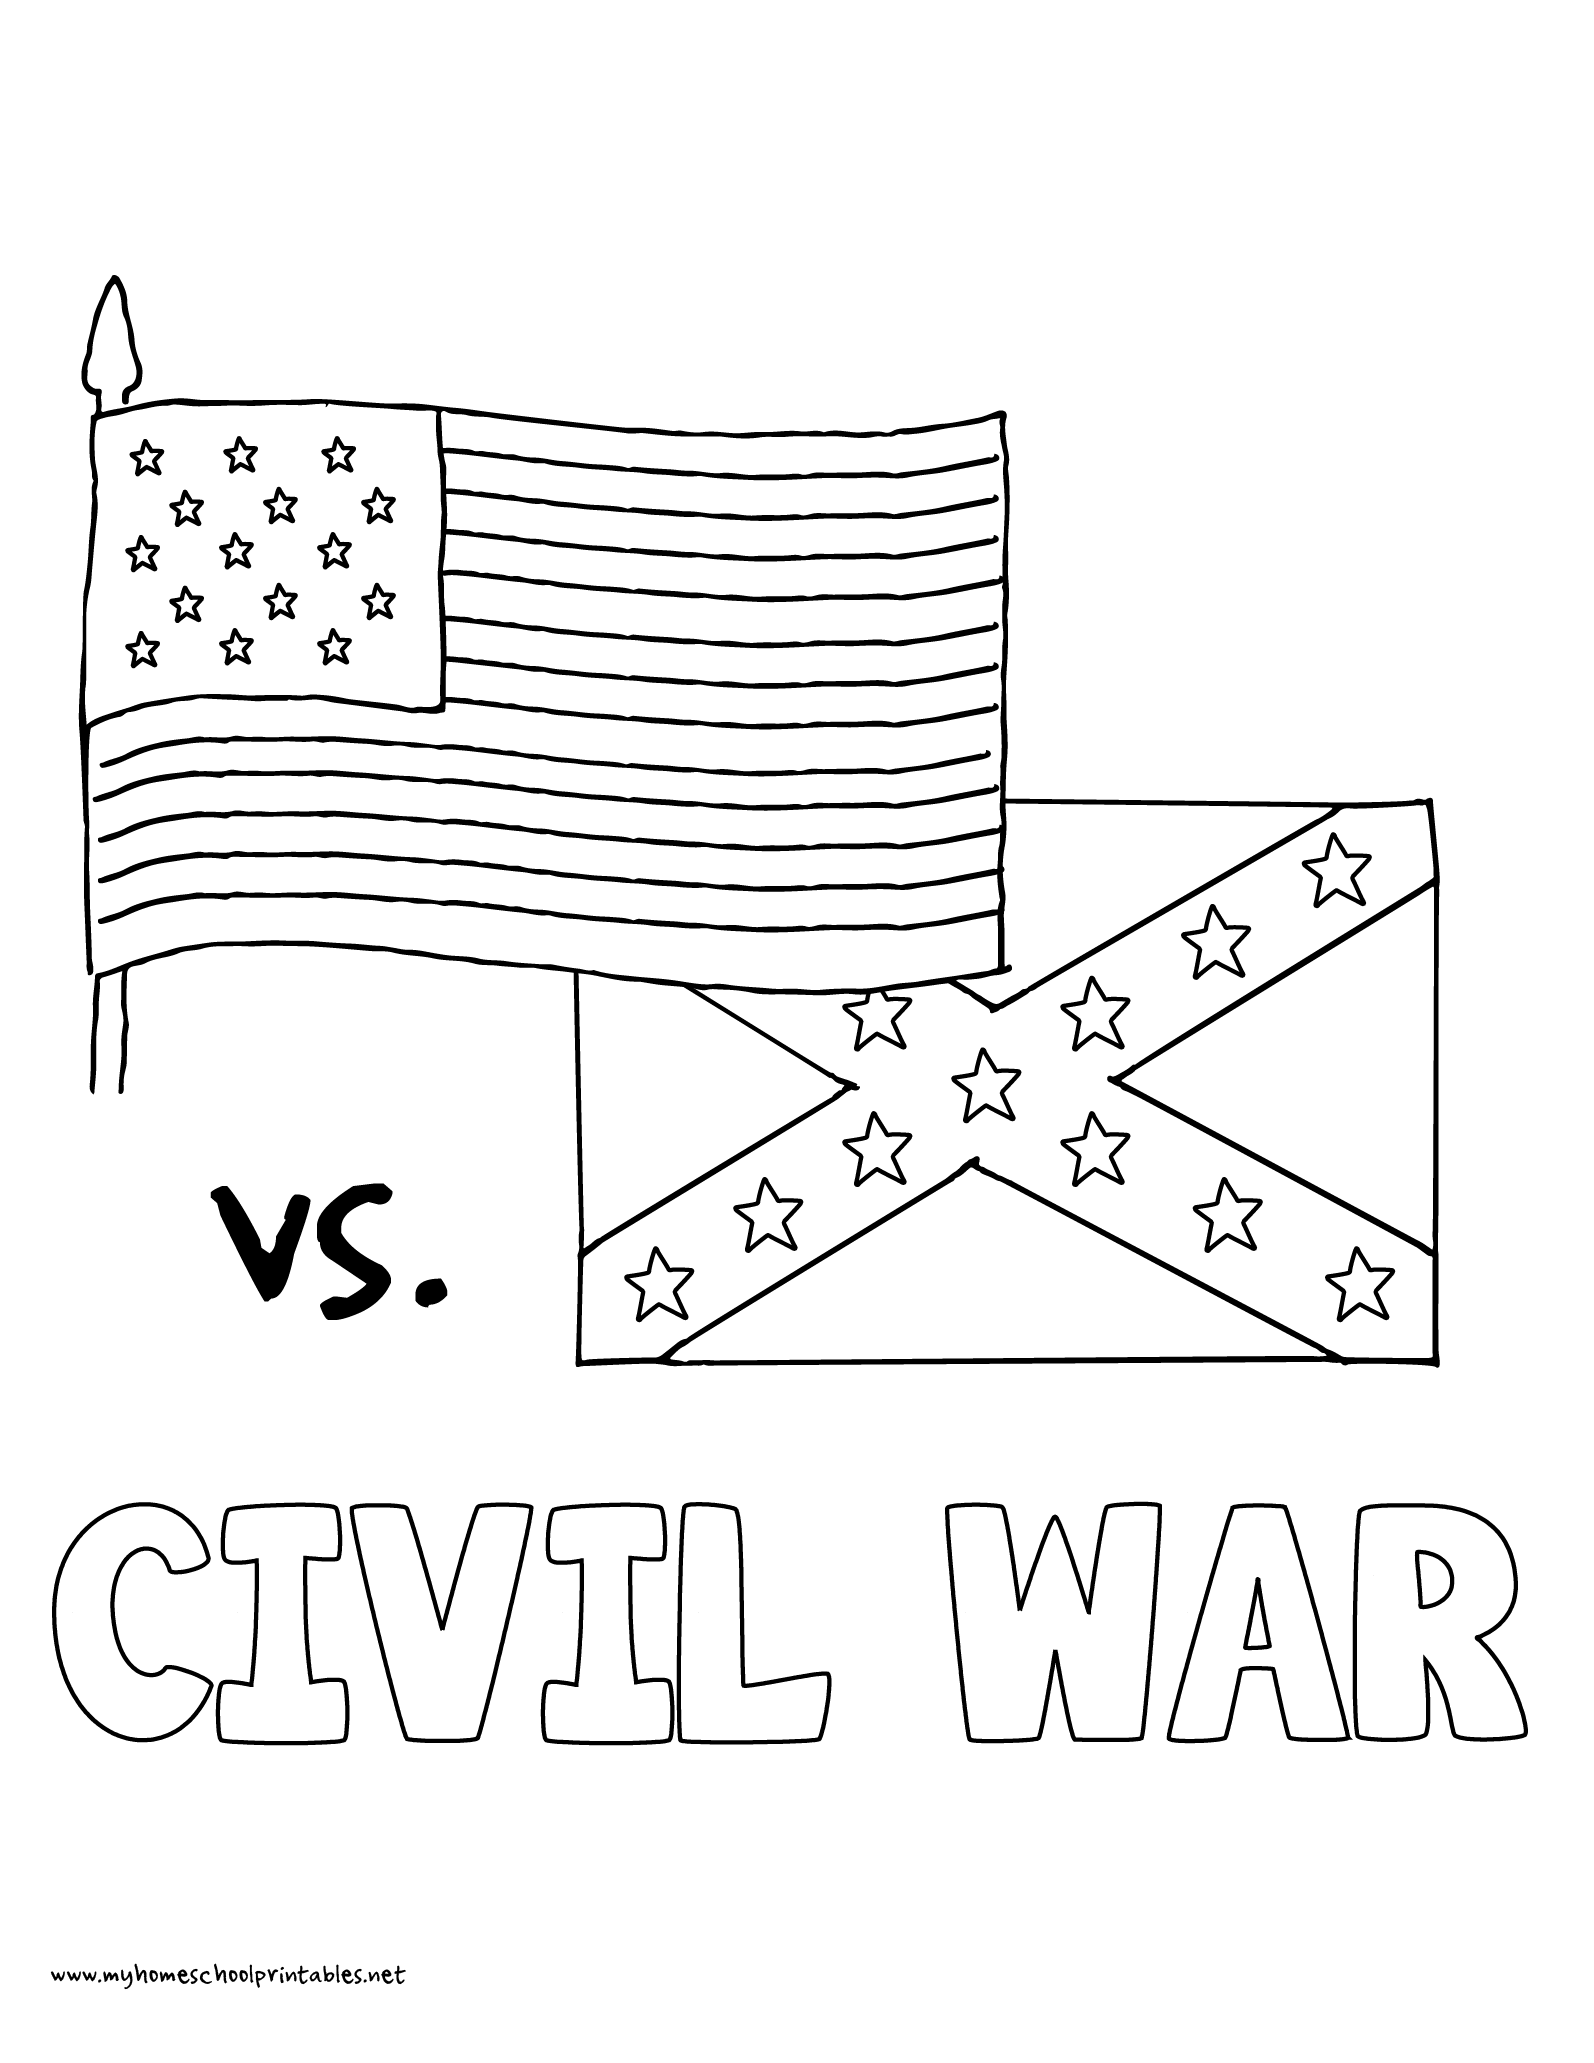 civil war coloring pages my homeschool printables history coloring pages volume 4 coloring civil pages war